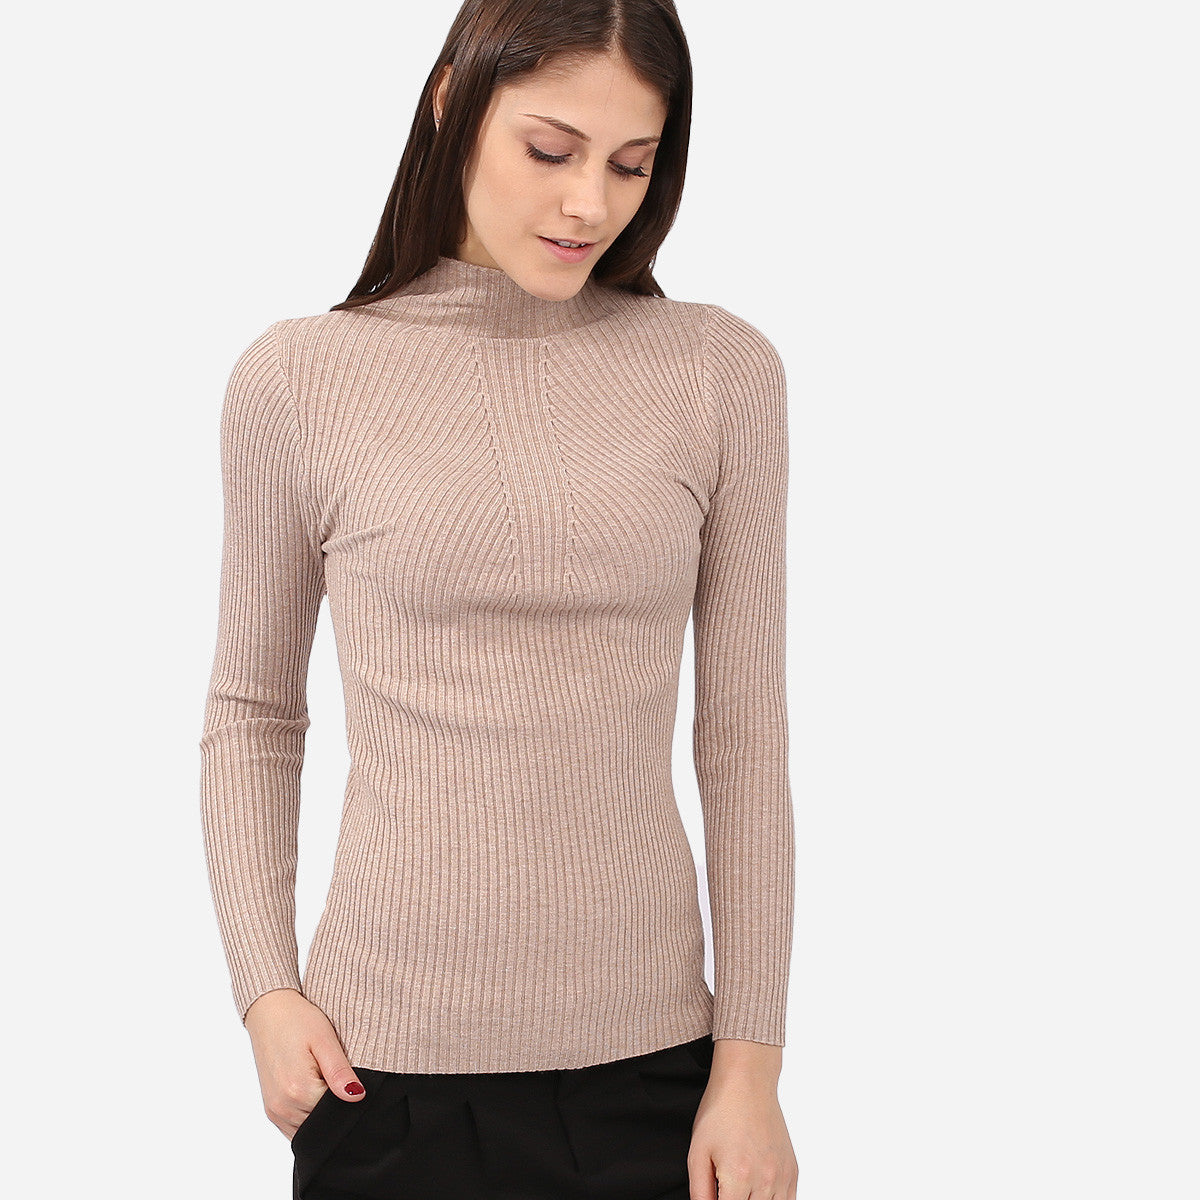 Valerie Beige Knitted Turtleneck Top